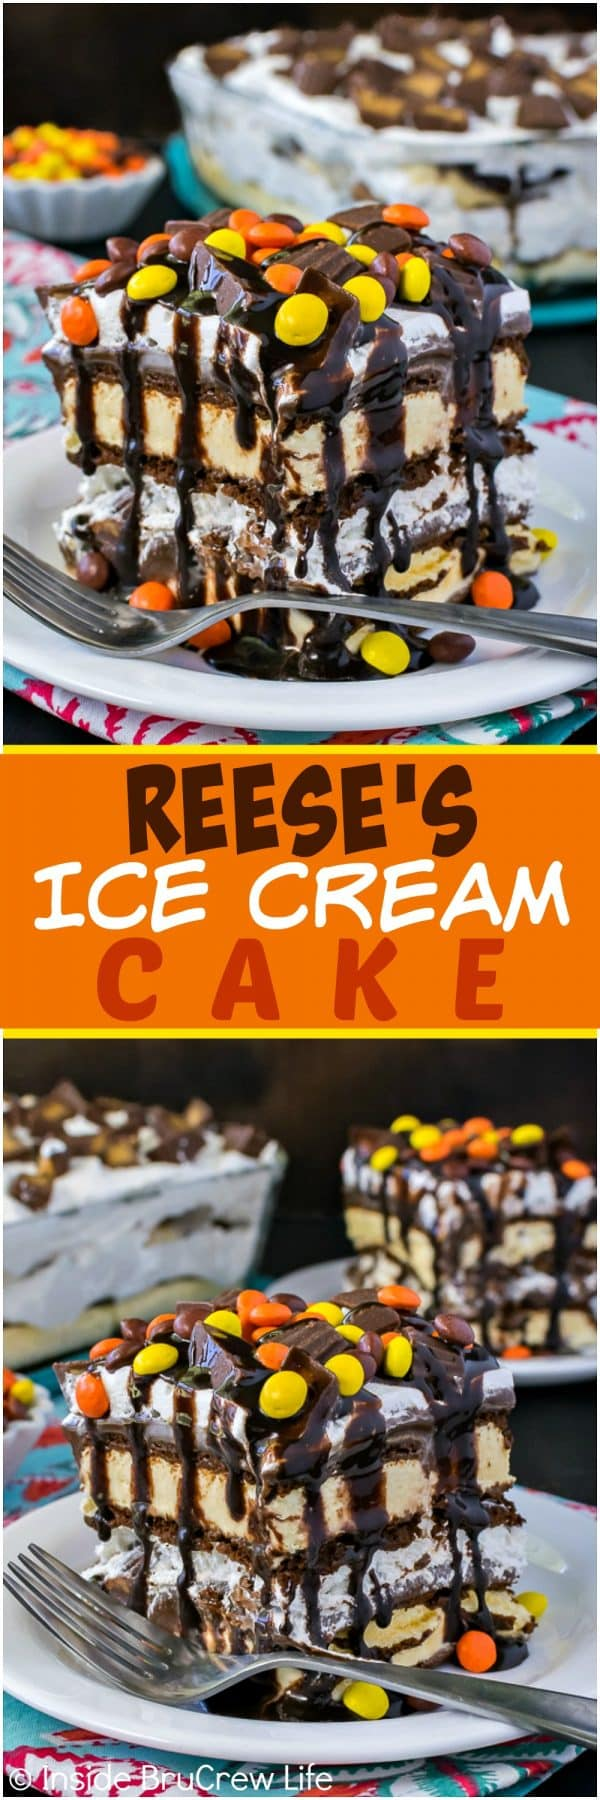 Reese's Ice Cream Cake - candy and hot fudge transforms ice cream sandwiches into a gourmet ice cream cake! Awesome and easy summer recipe for any party! #icecreamcake #diyicecreamcake #icecreamsandwiches #peanutbuttercups #summer